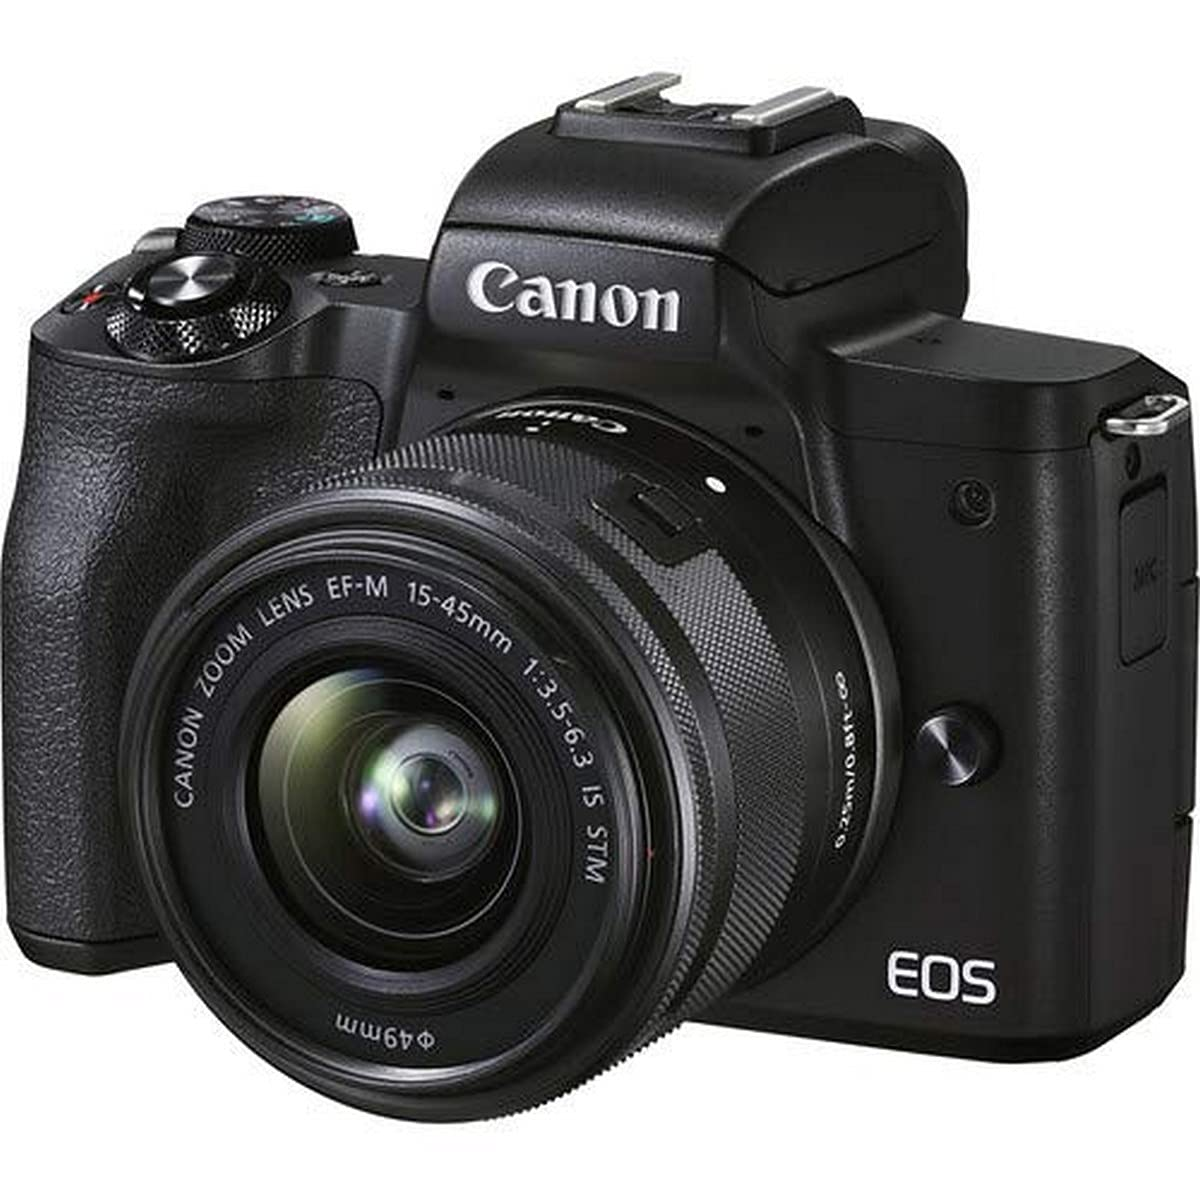 Canon EOS M50 / Mark II - Best vlogging camera for beginners